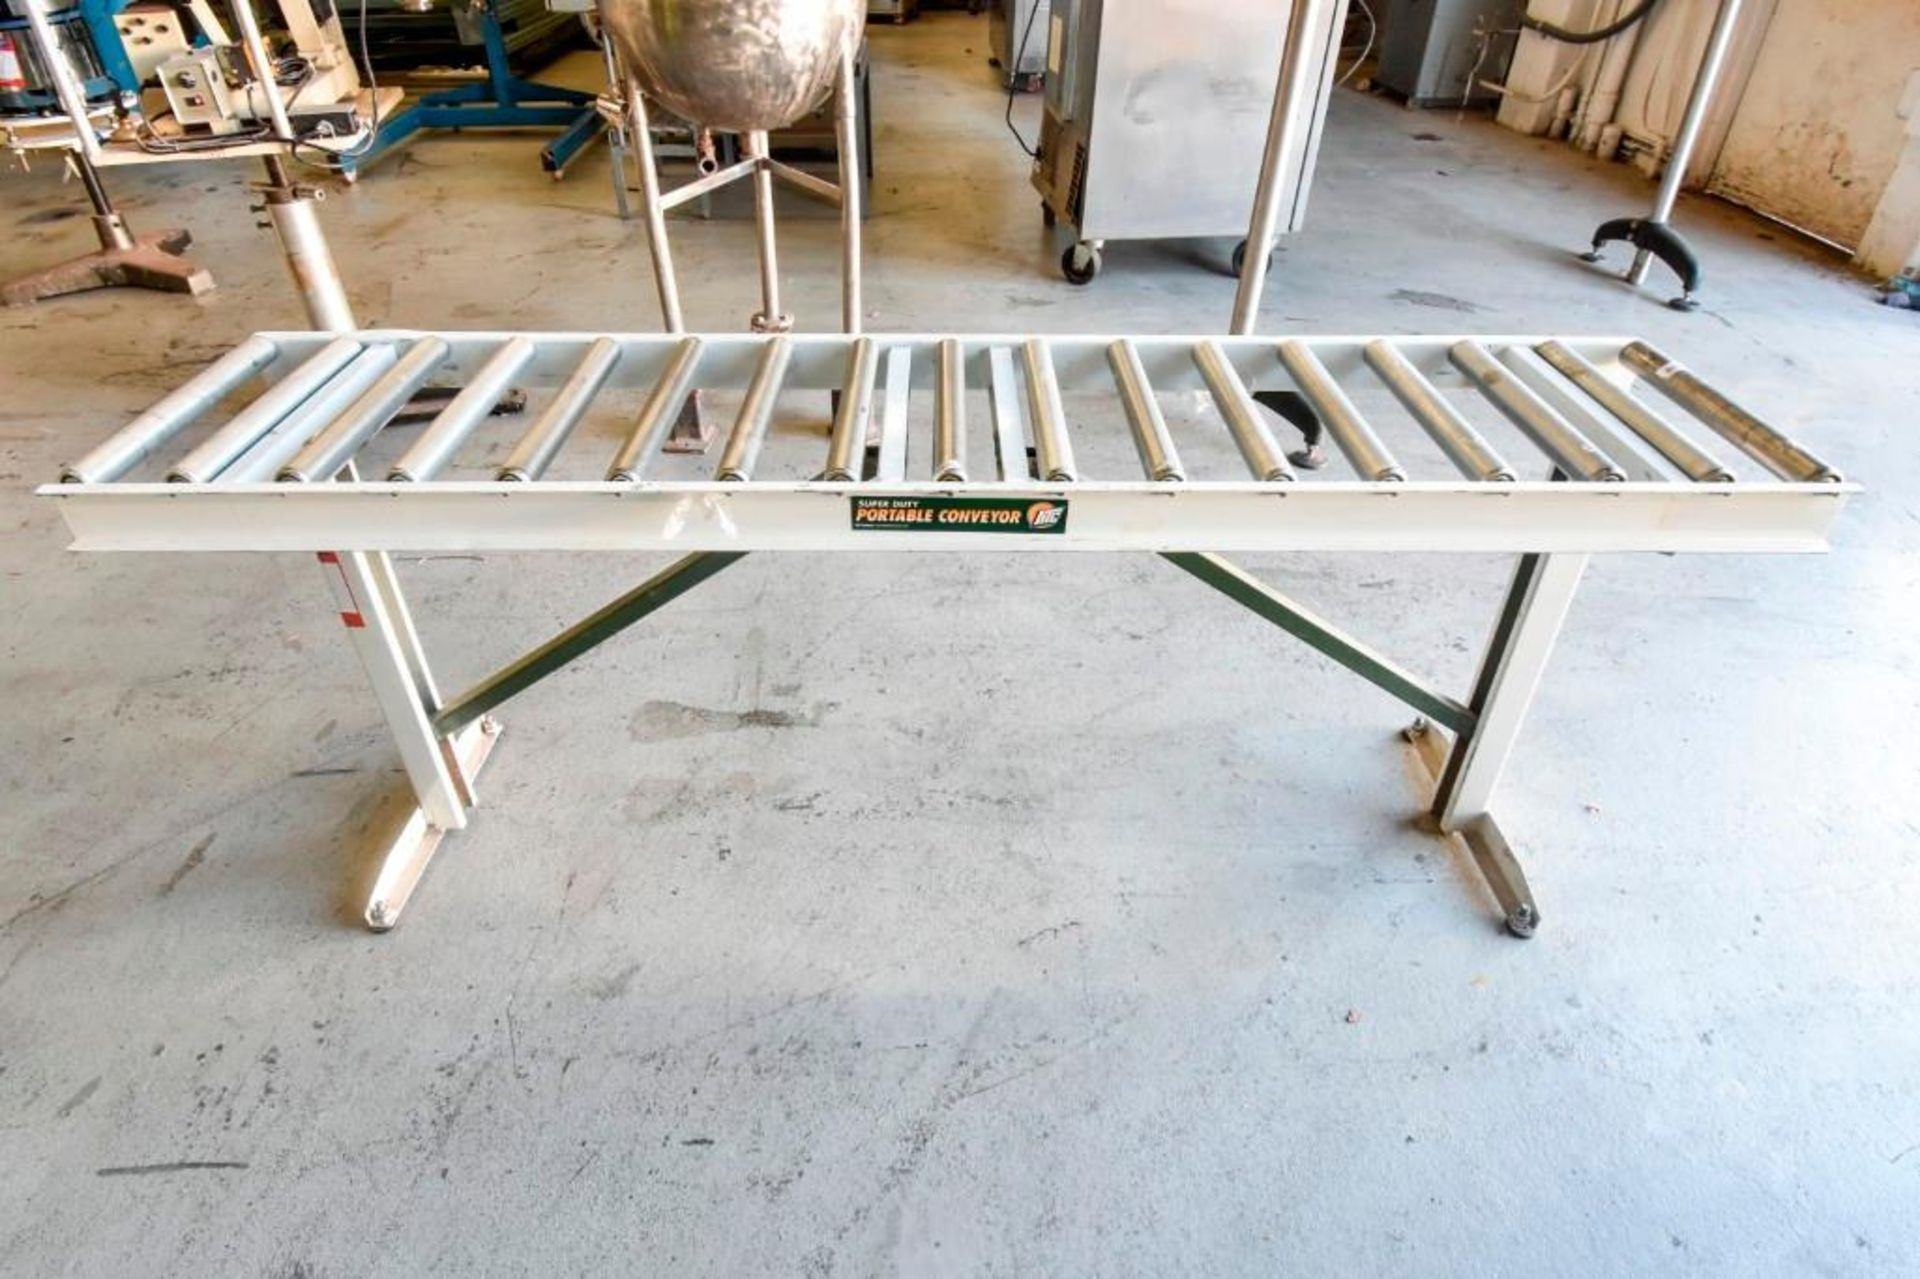 Super Duty Portable Folding Roller Conveyor 5'7'' - Image 7 of 11